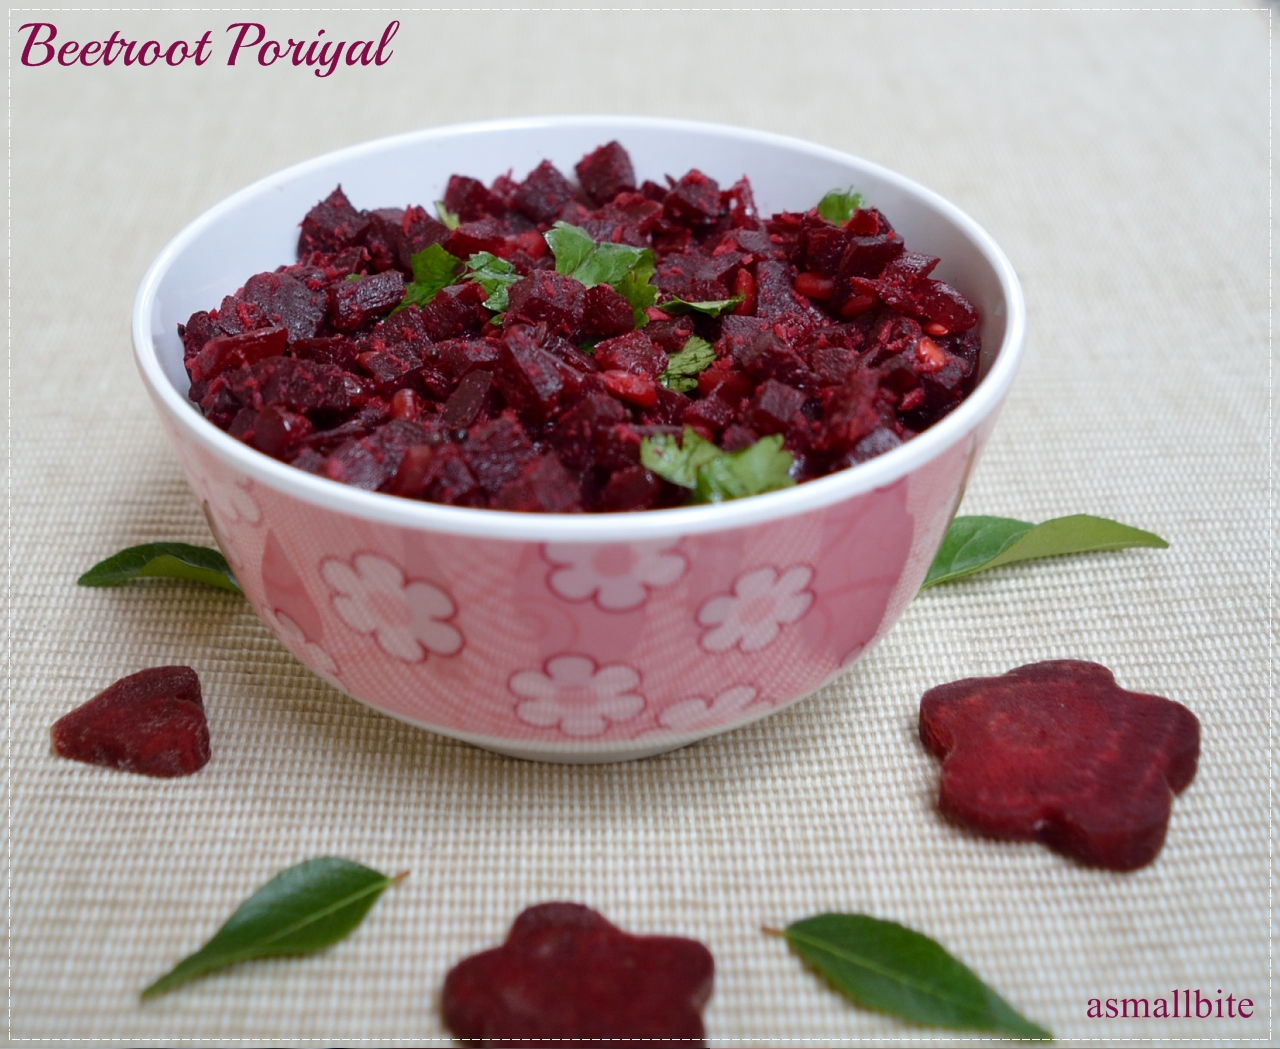 Beetroot Poriyal Recipe 1